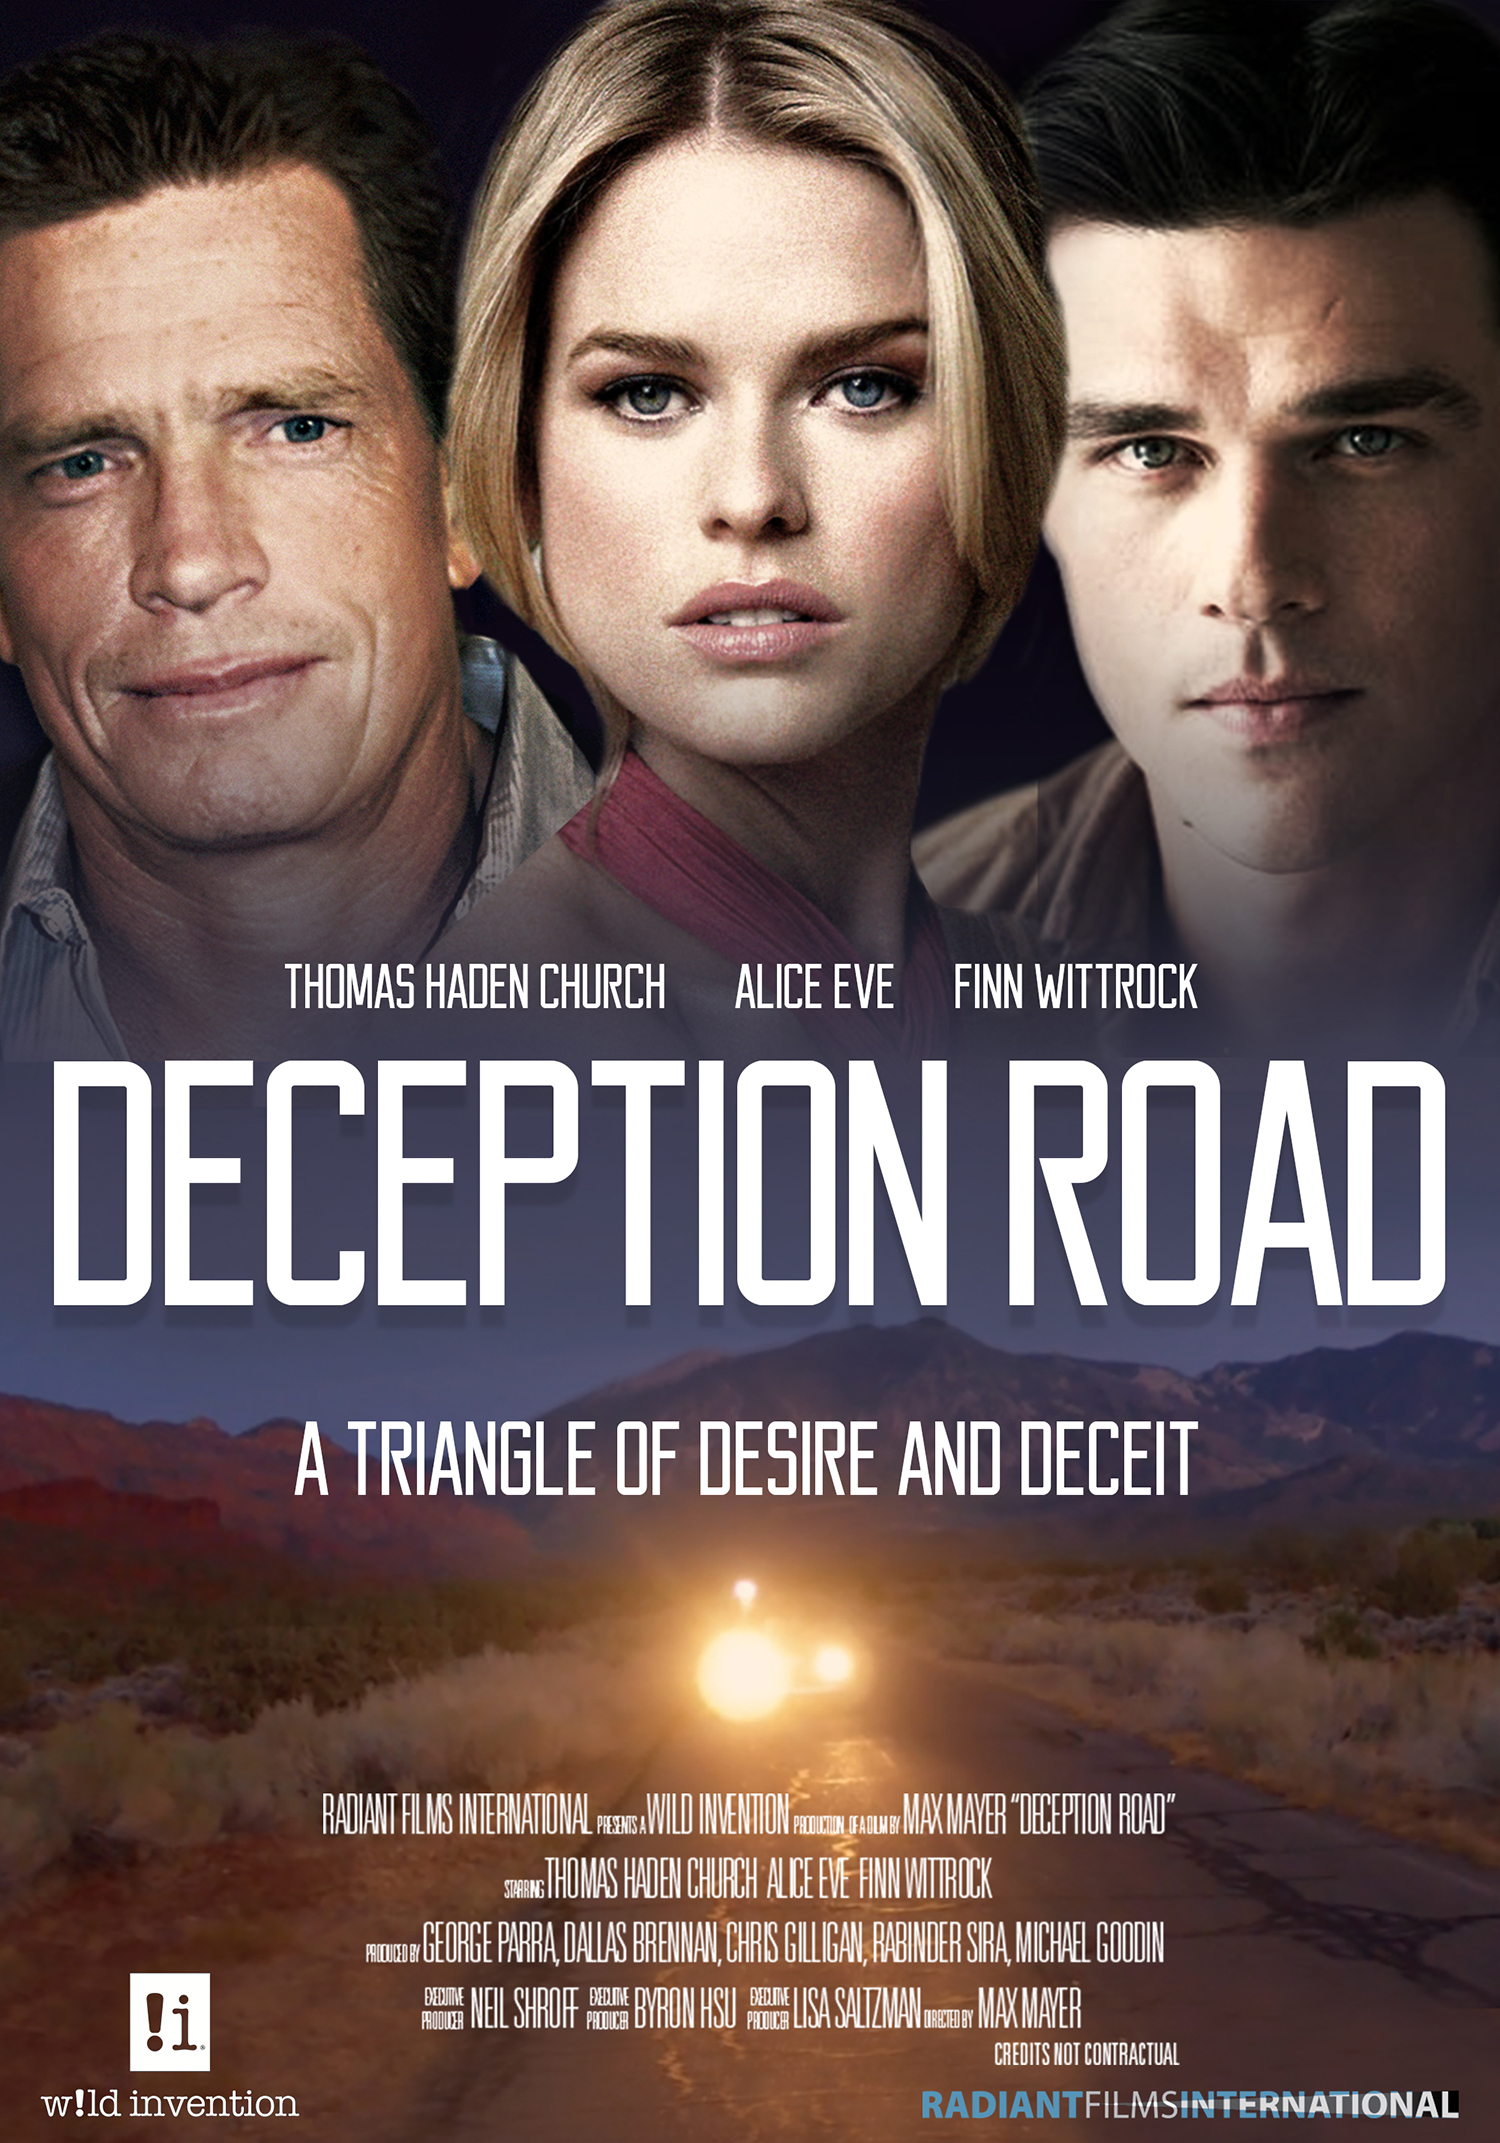 Deception Road Movie Poster with Thomas Haden Church, Alice Eve, and Finn Wittrock